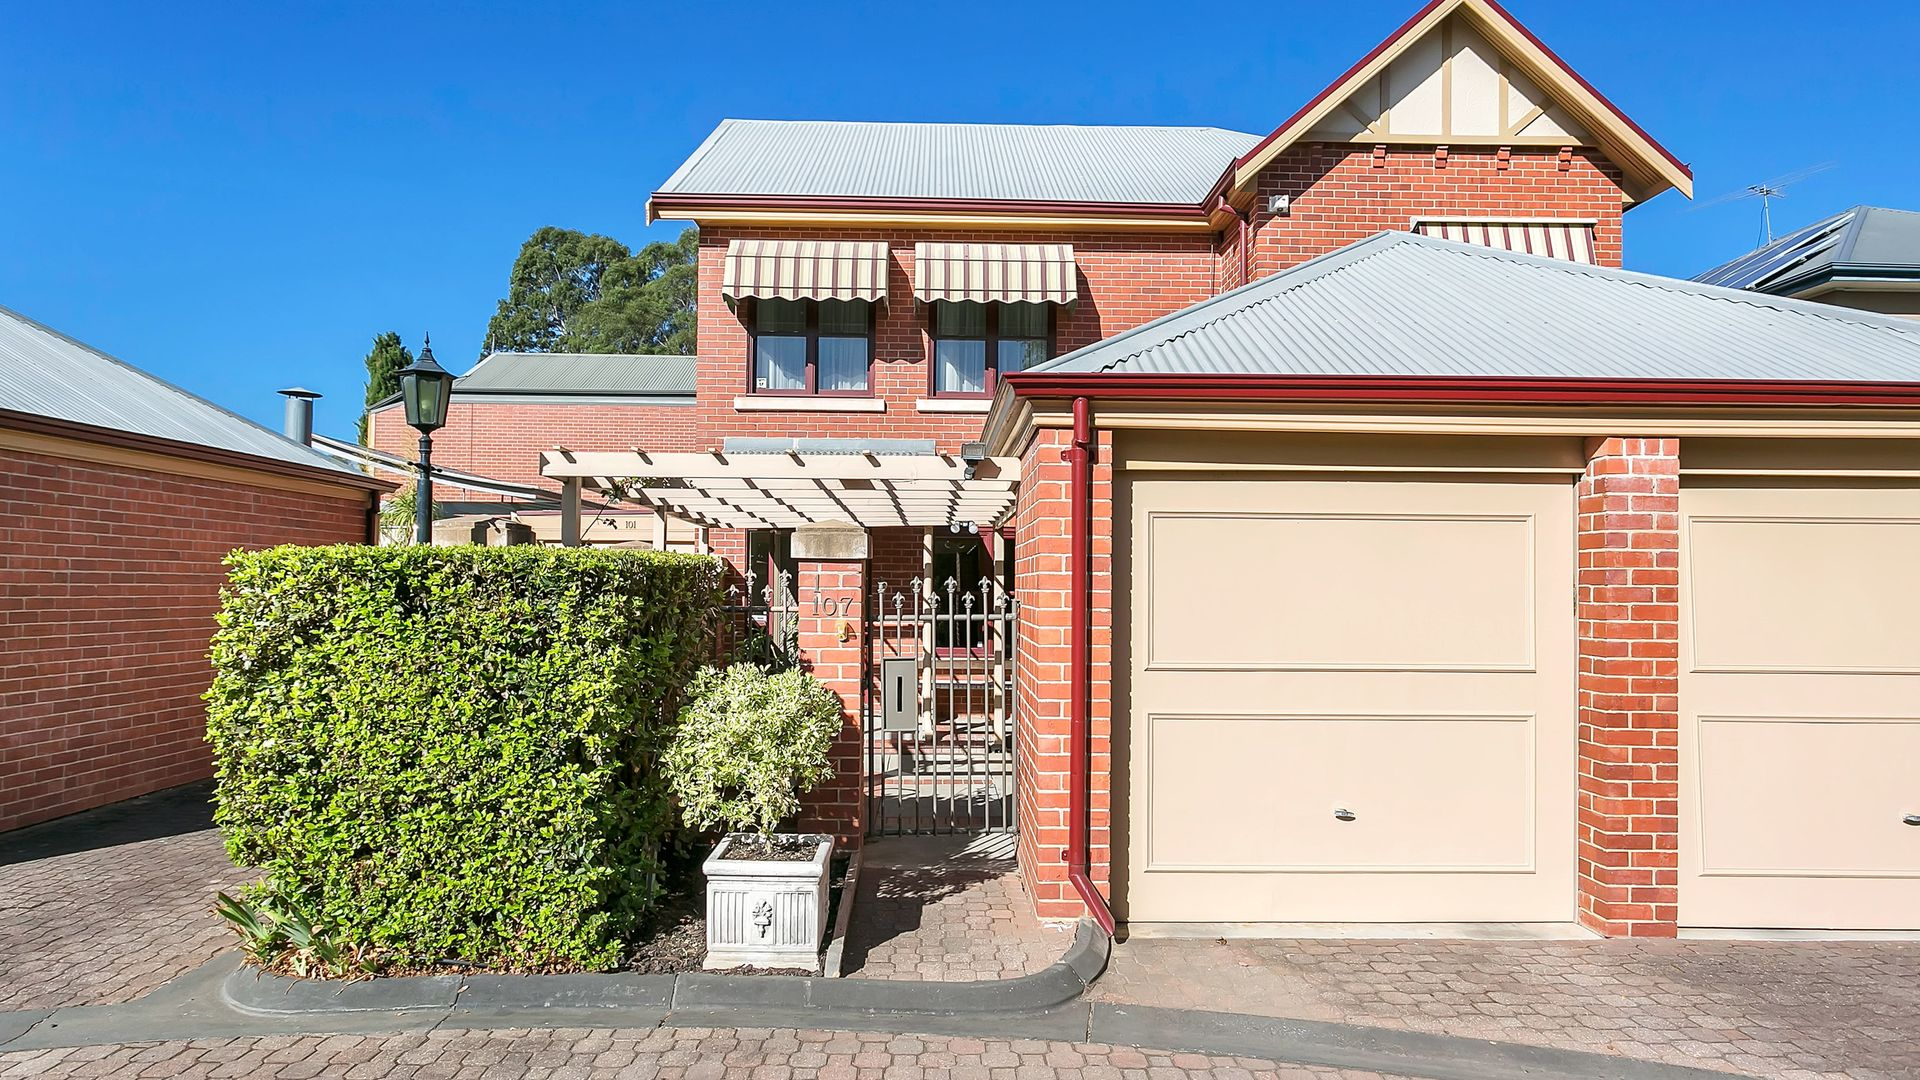 1/107 Barton Terrace West, North Adelaide SA 5006, Image 1